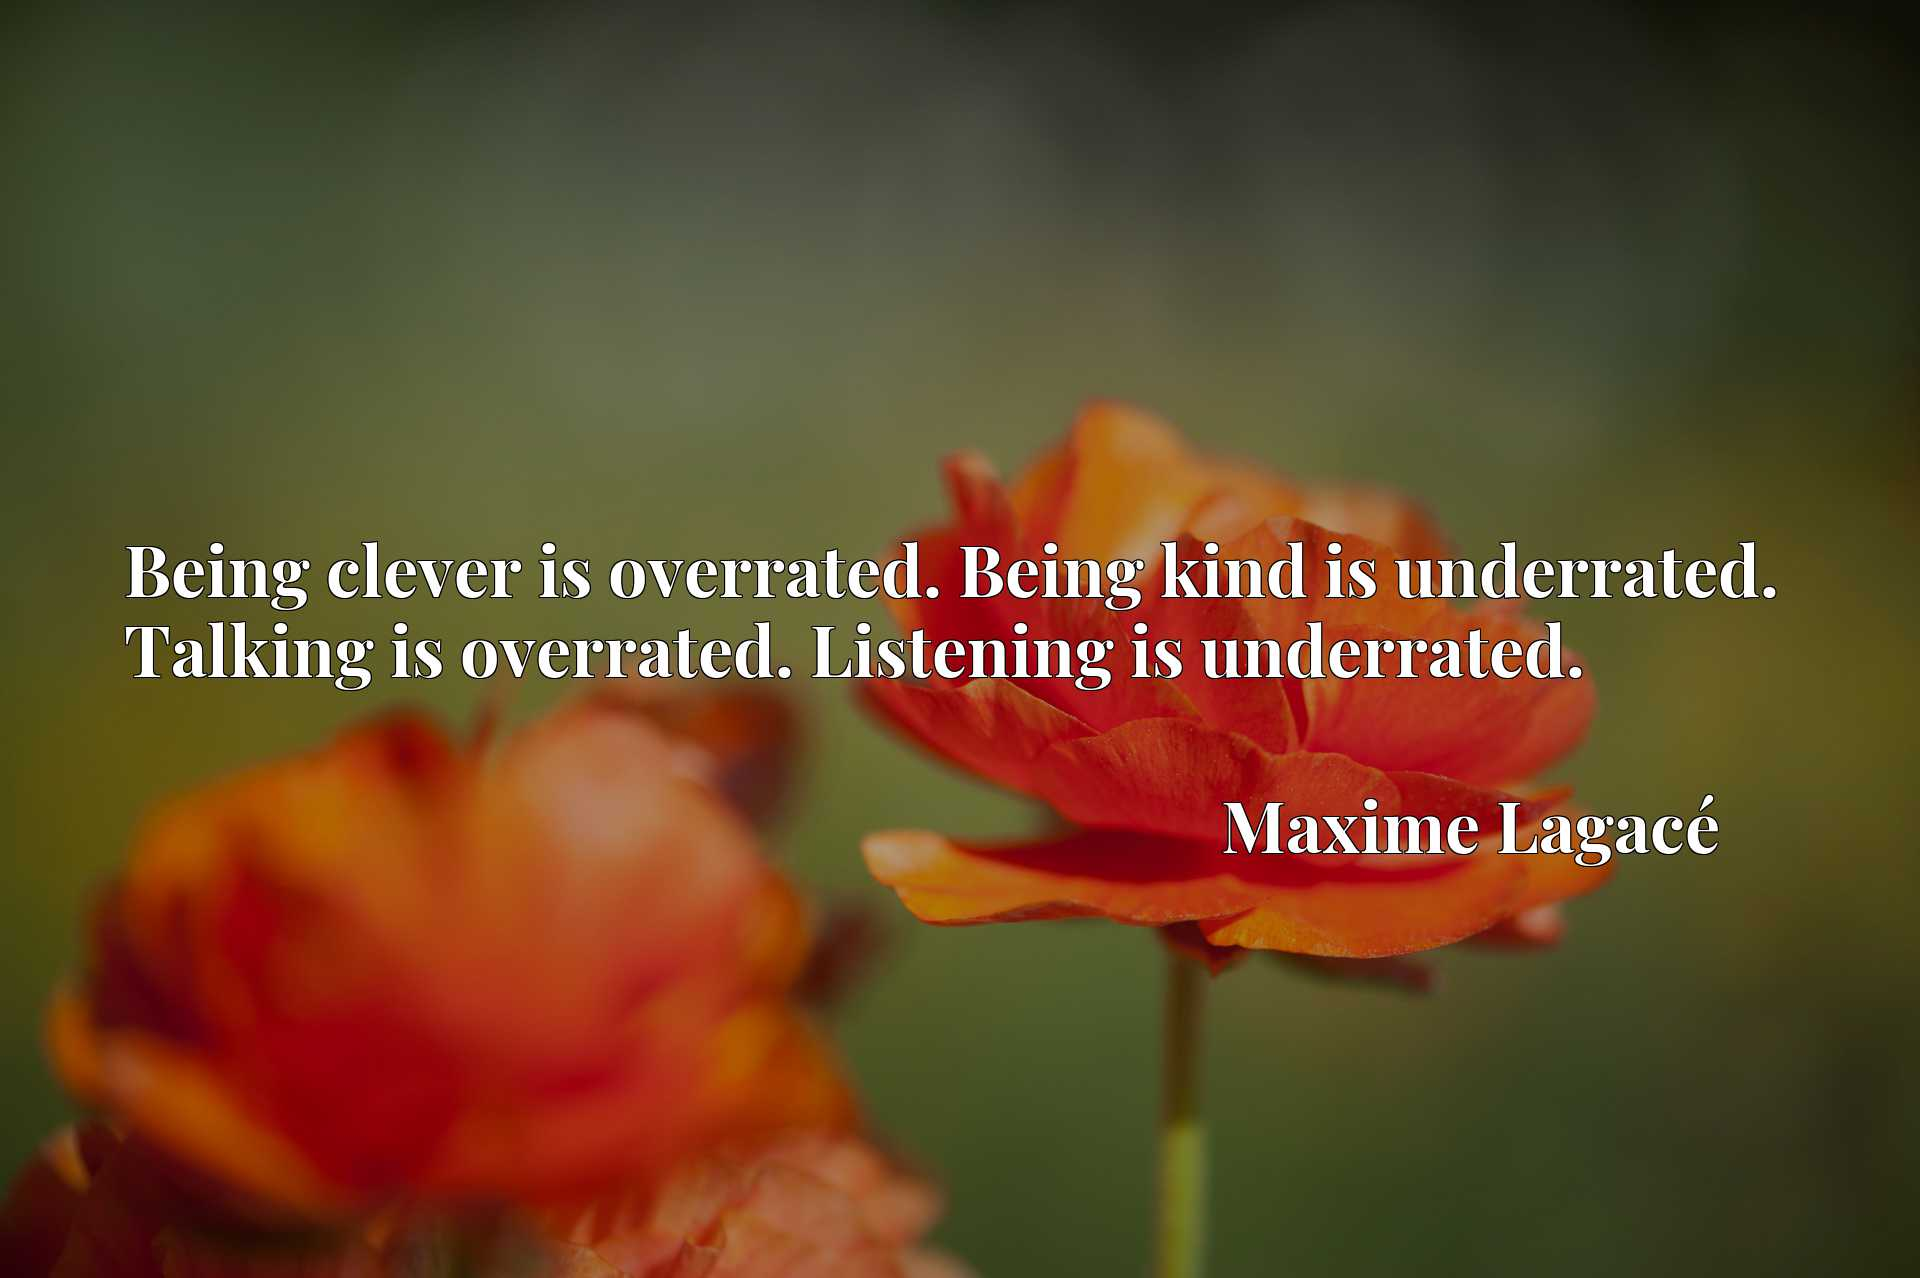 Being clever is overrated. Being kind is underrated. Talking is overrated. Listening is underrated.